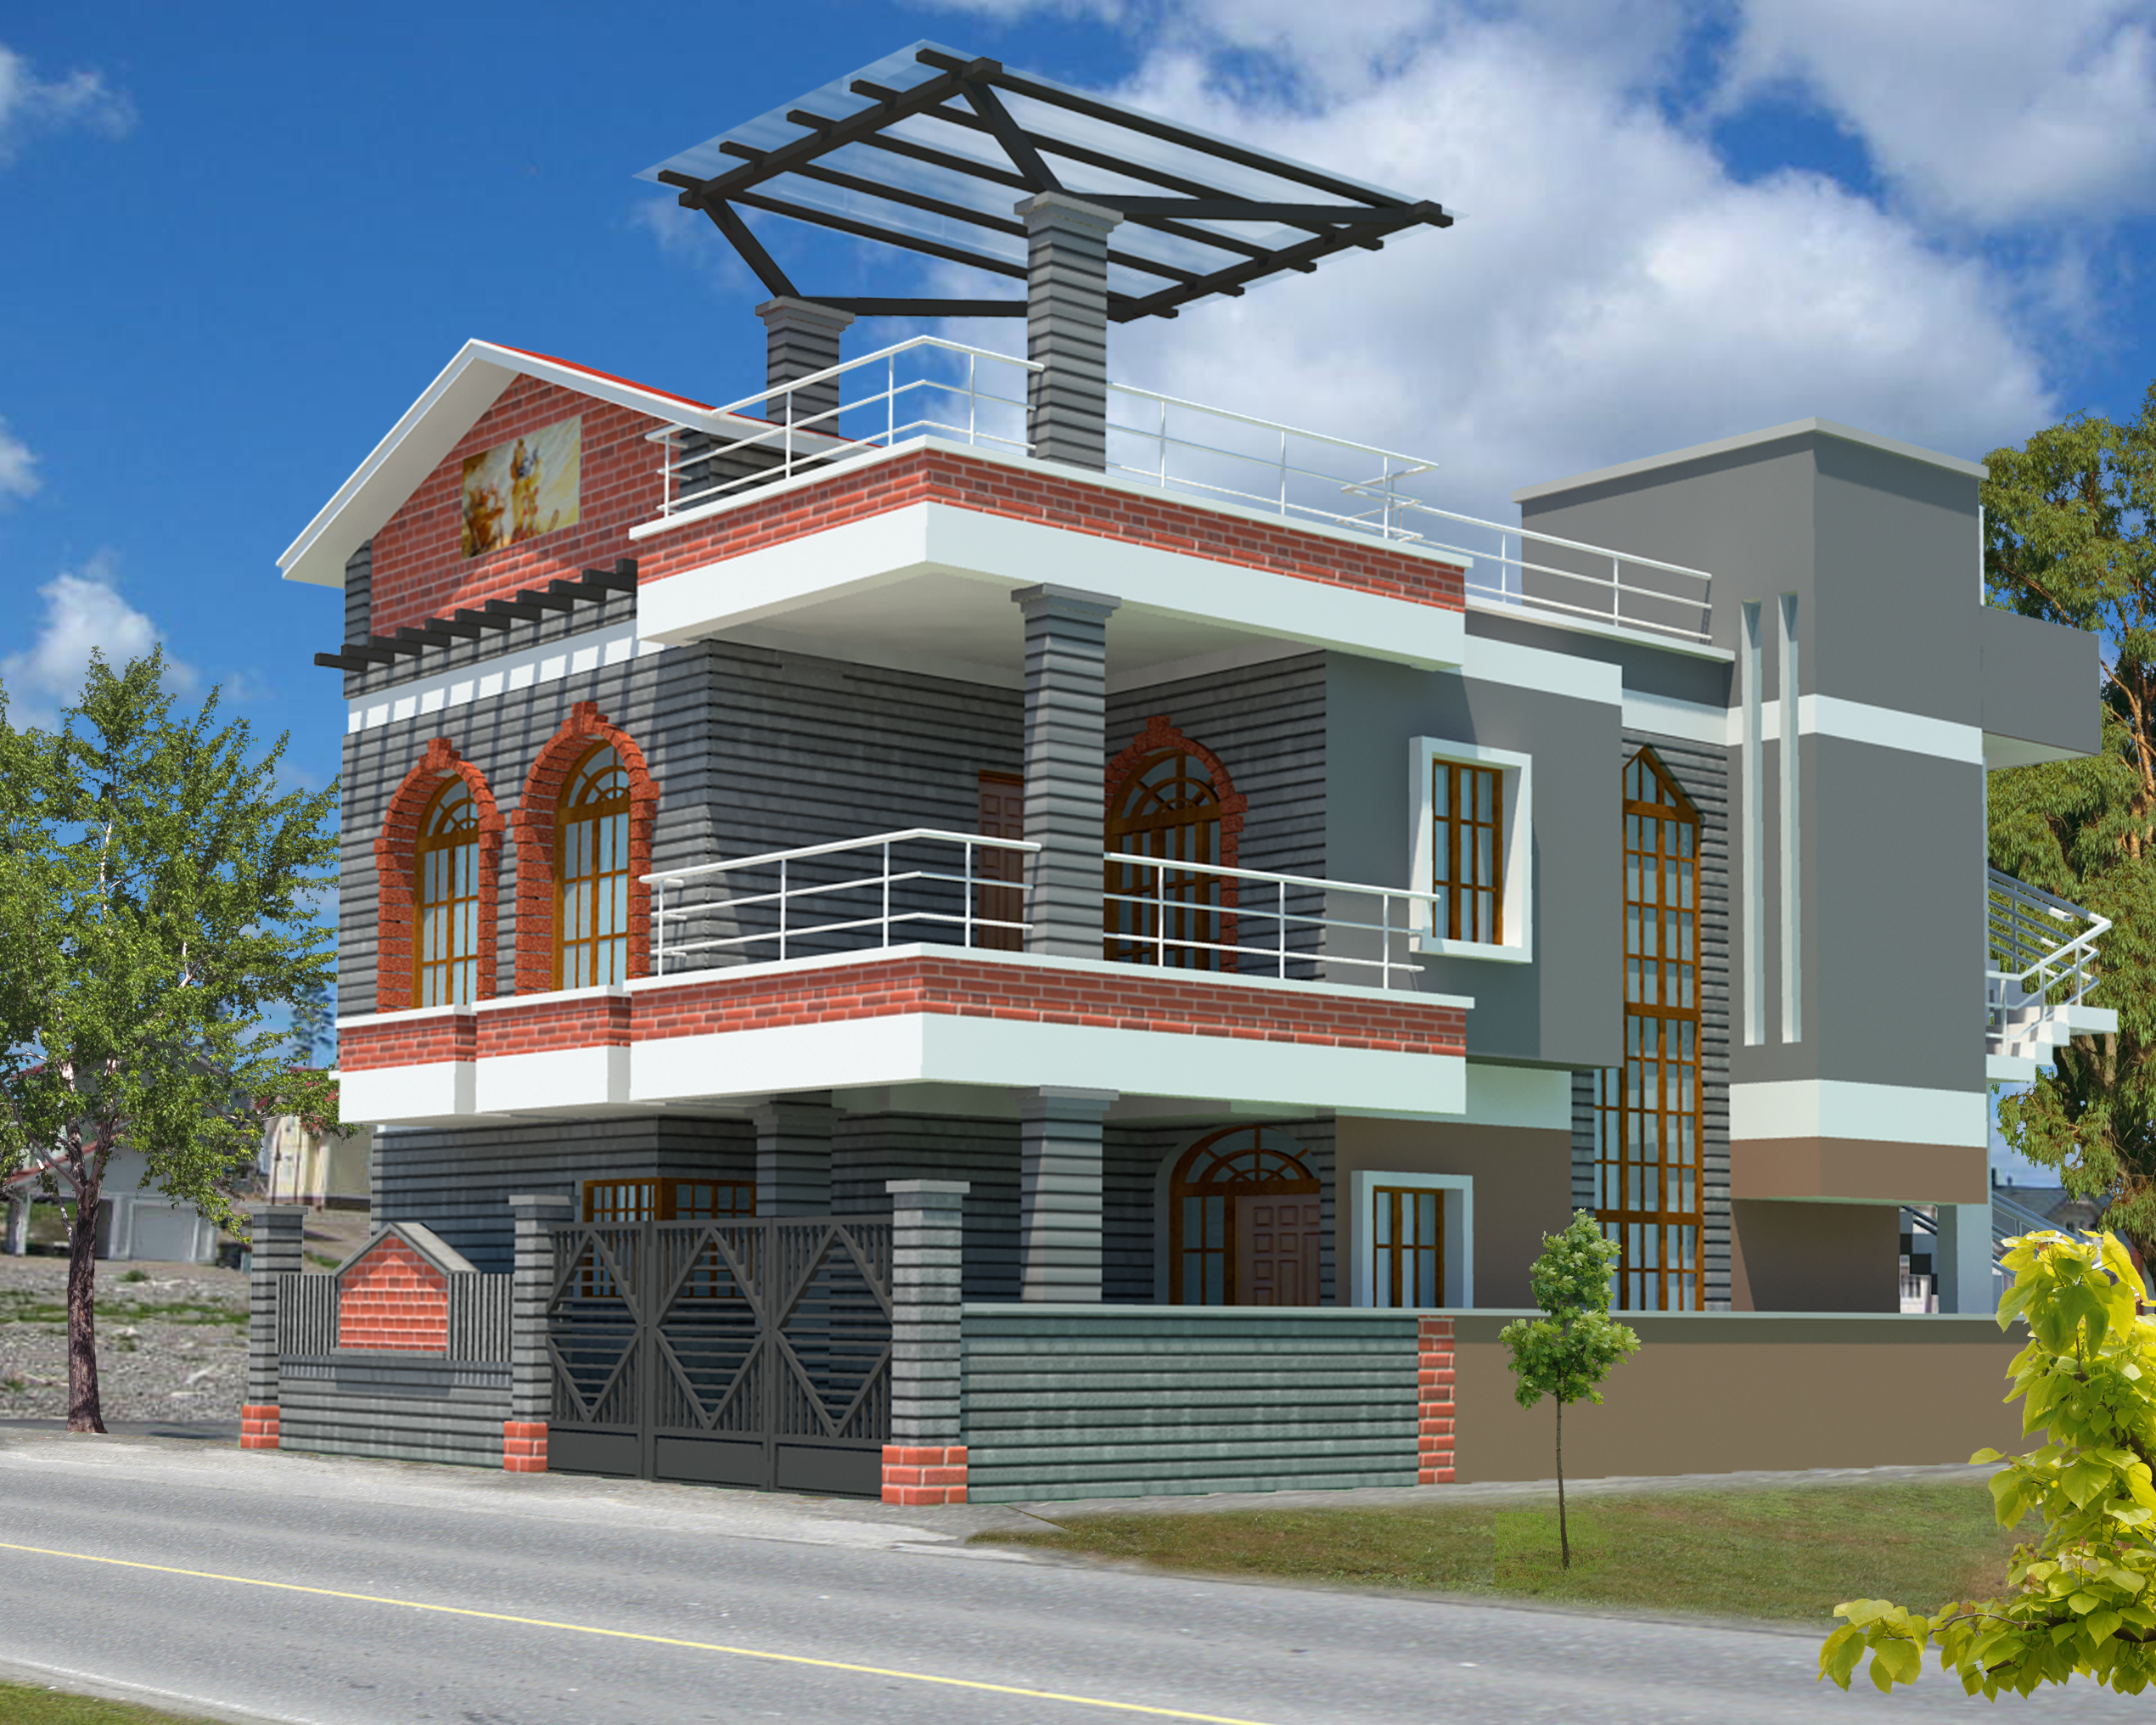 Interior exterior plan make use of websites to build a House 3d model